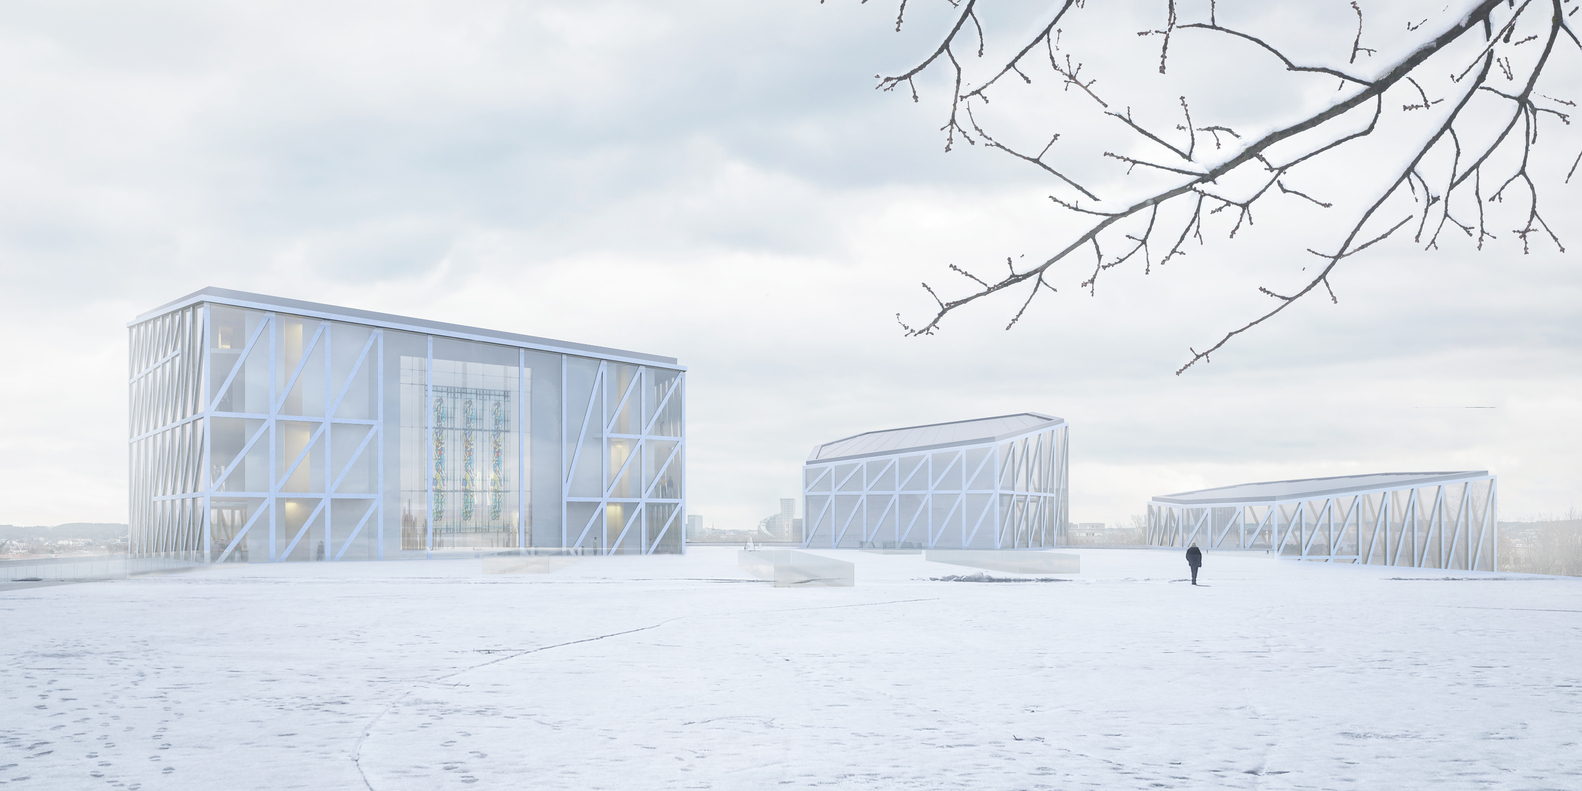 Arquivio Architects won the Lithuanian National Concert Hall design competition